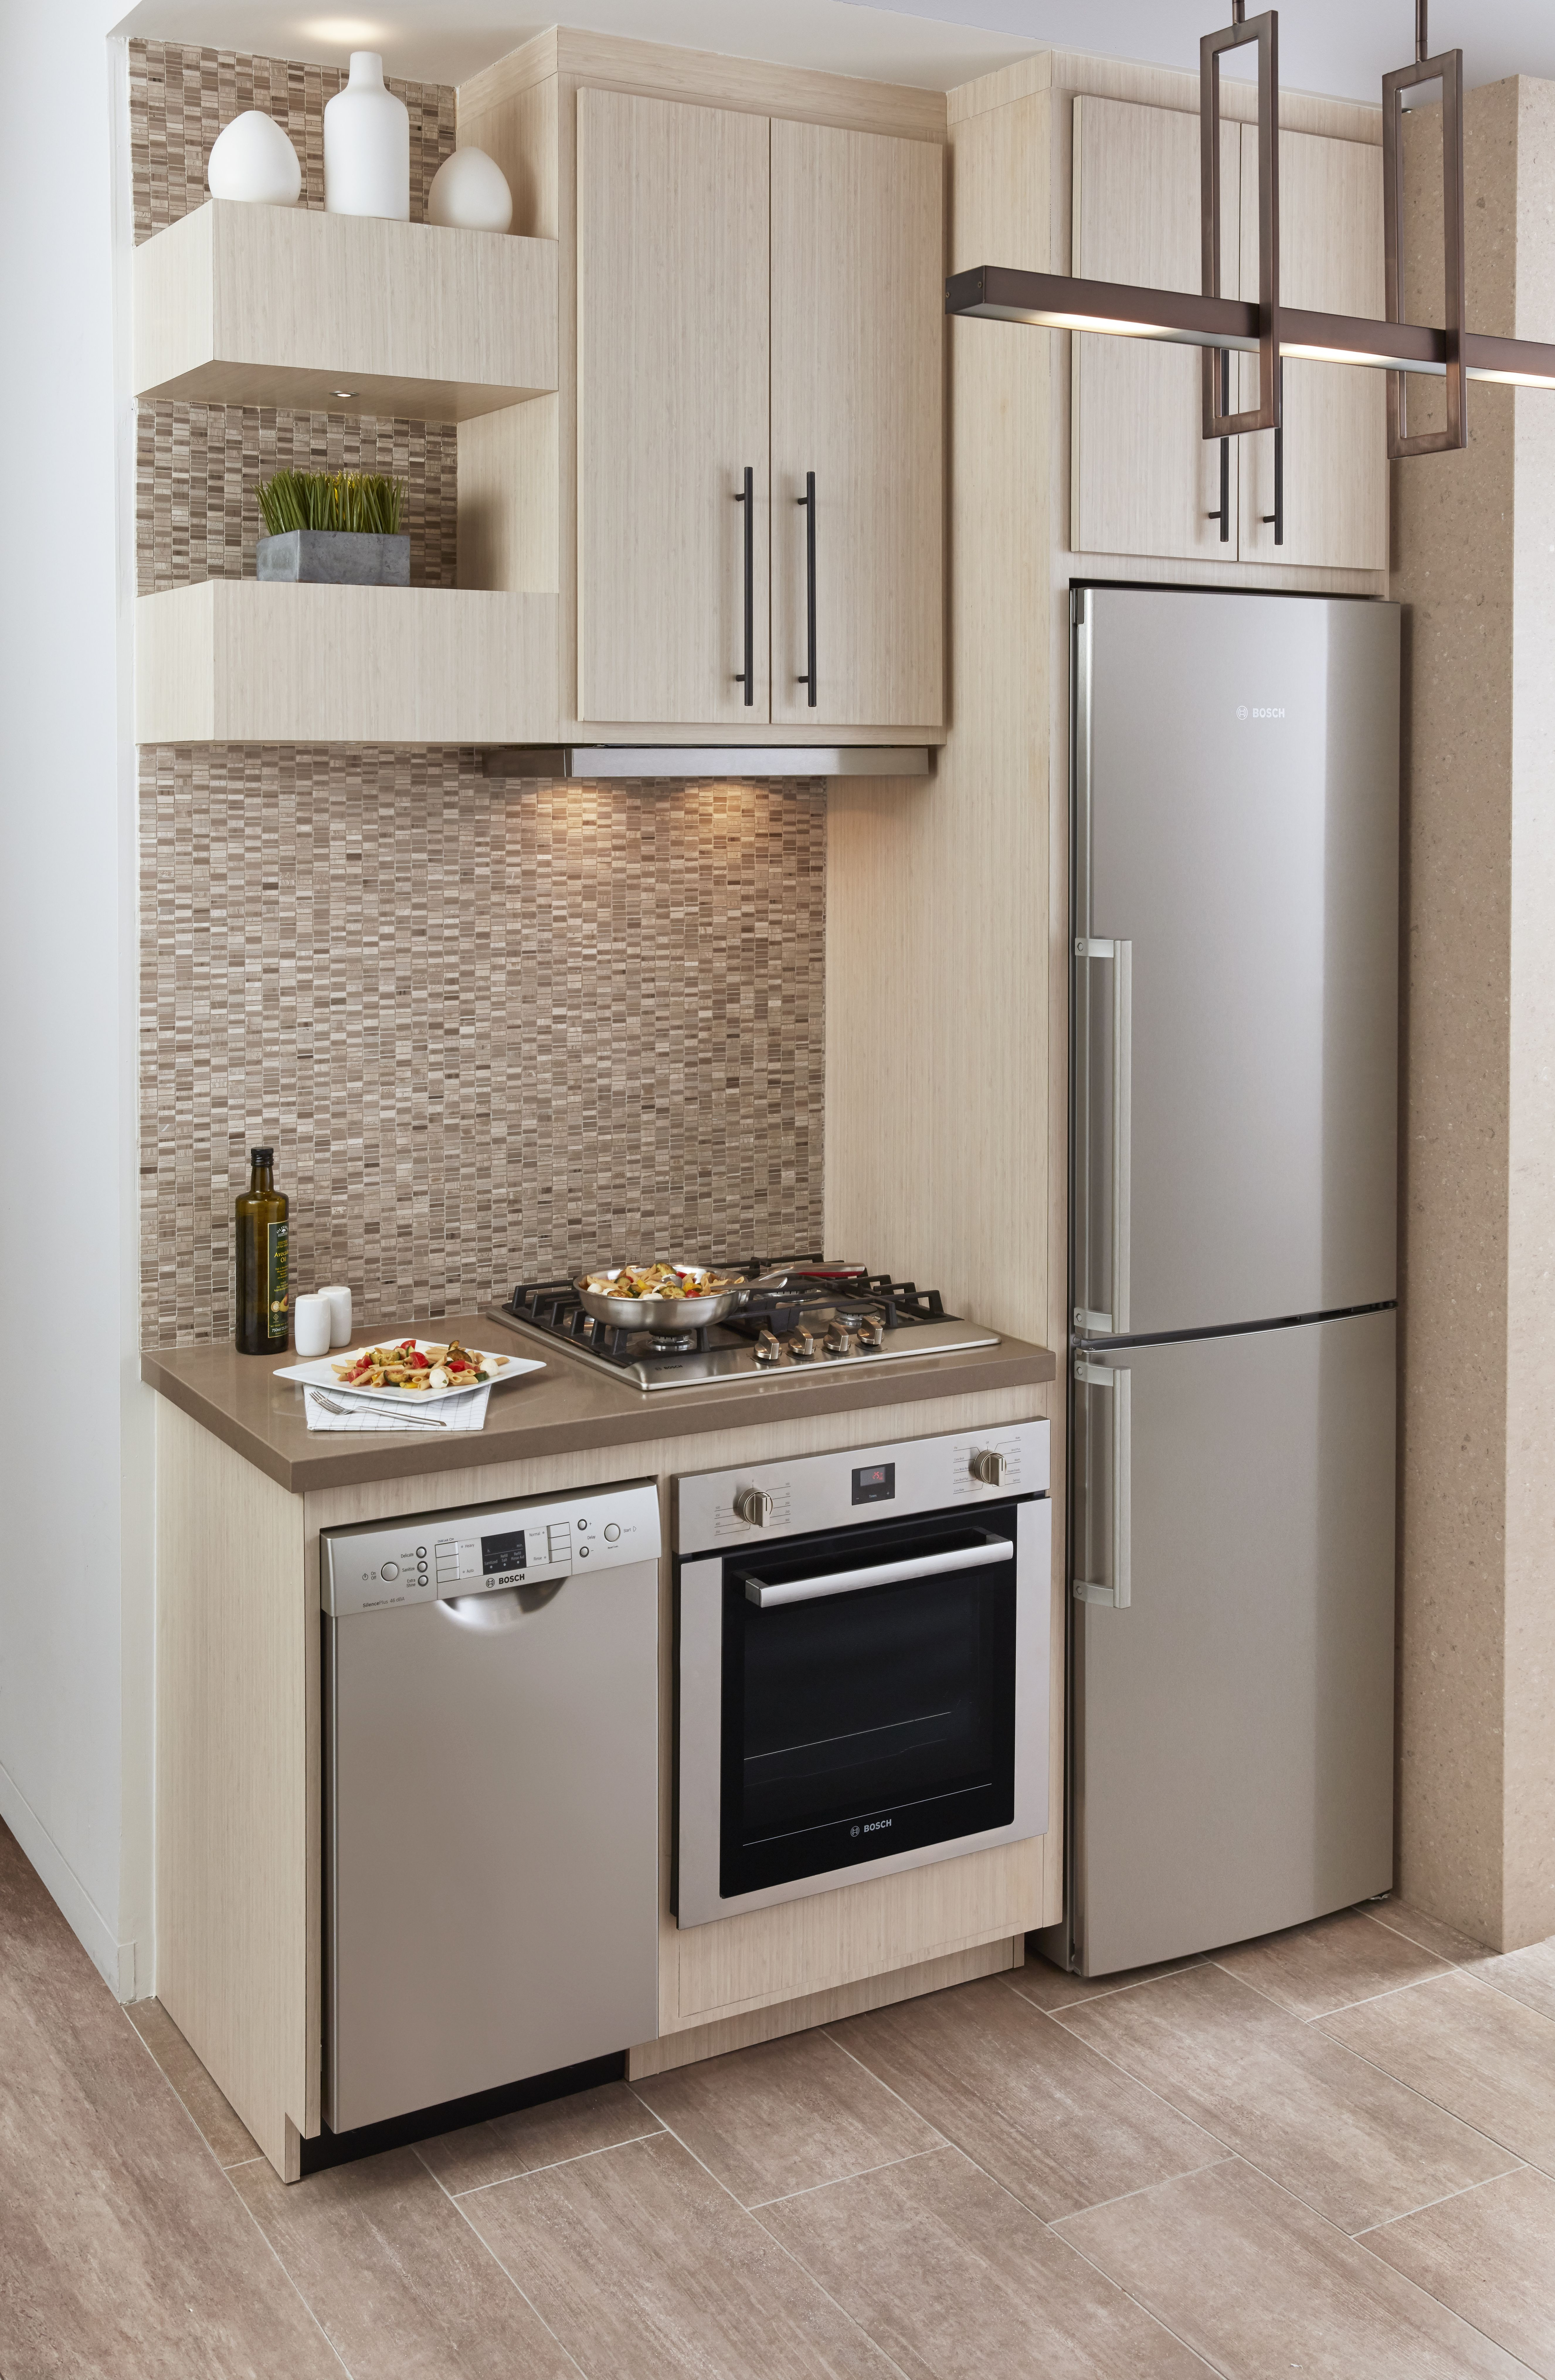 compact appliances for small kitchens kitchen cupboard doors hi tech s p a c e pinterest apartment spaces are taking over if you ve been paying attention to the home and design industry last 18 months or perused any number of